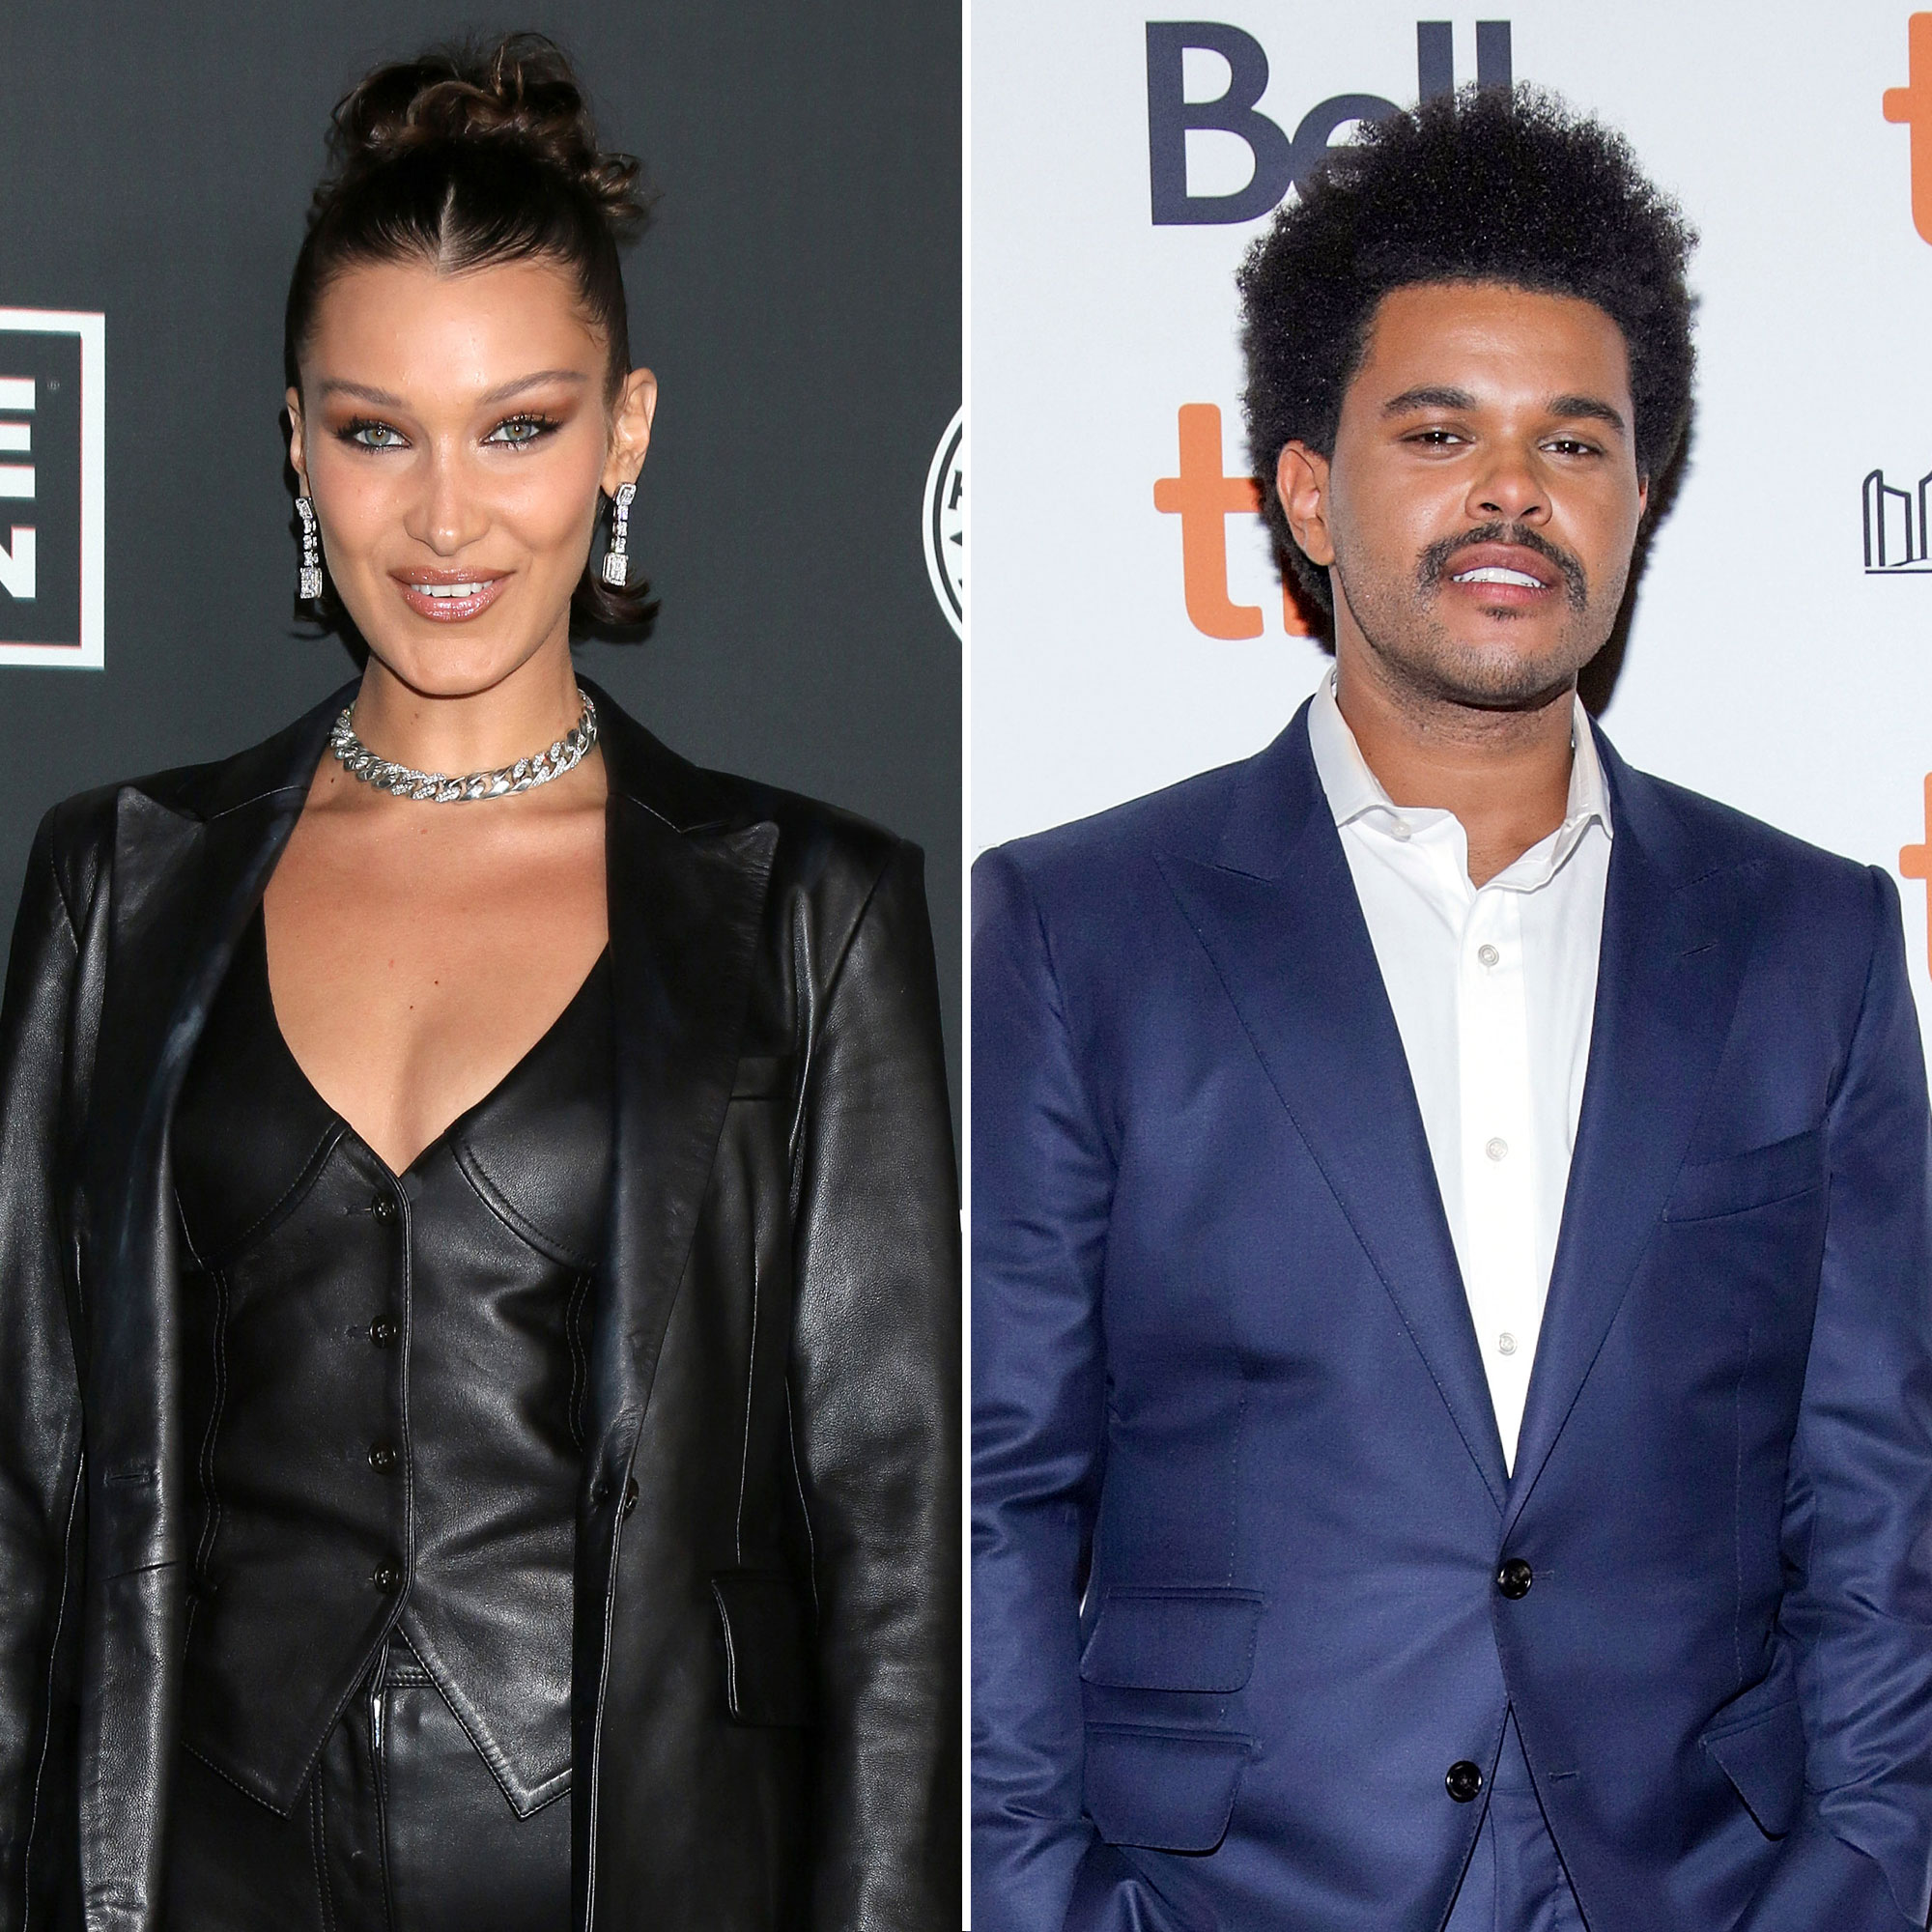 Has weeknd who dated the The Weeknd